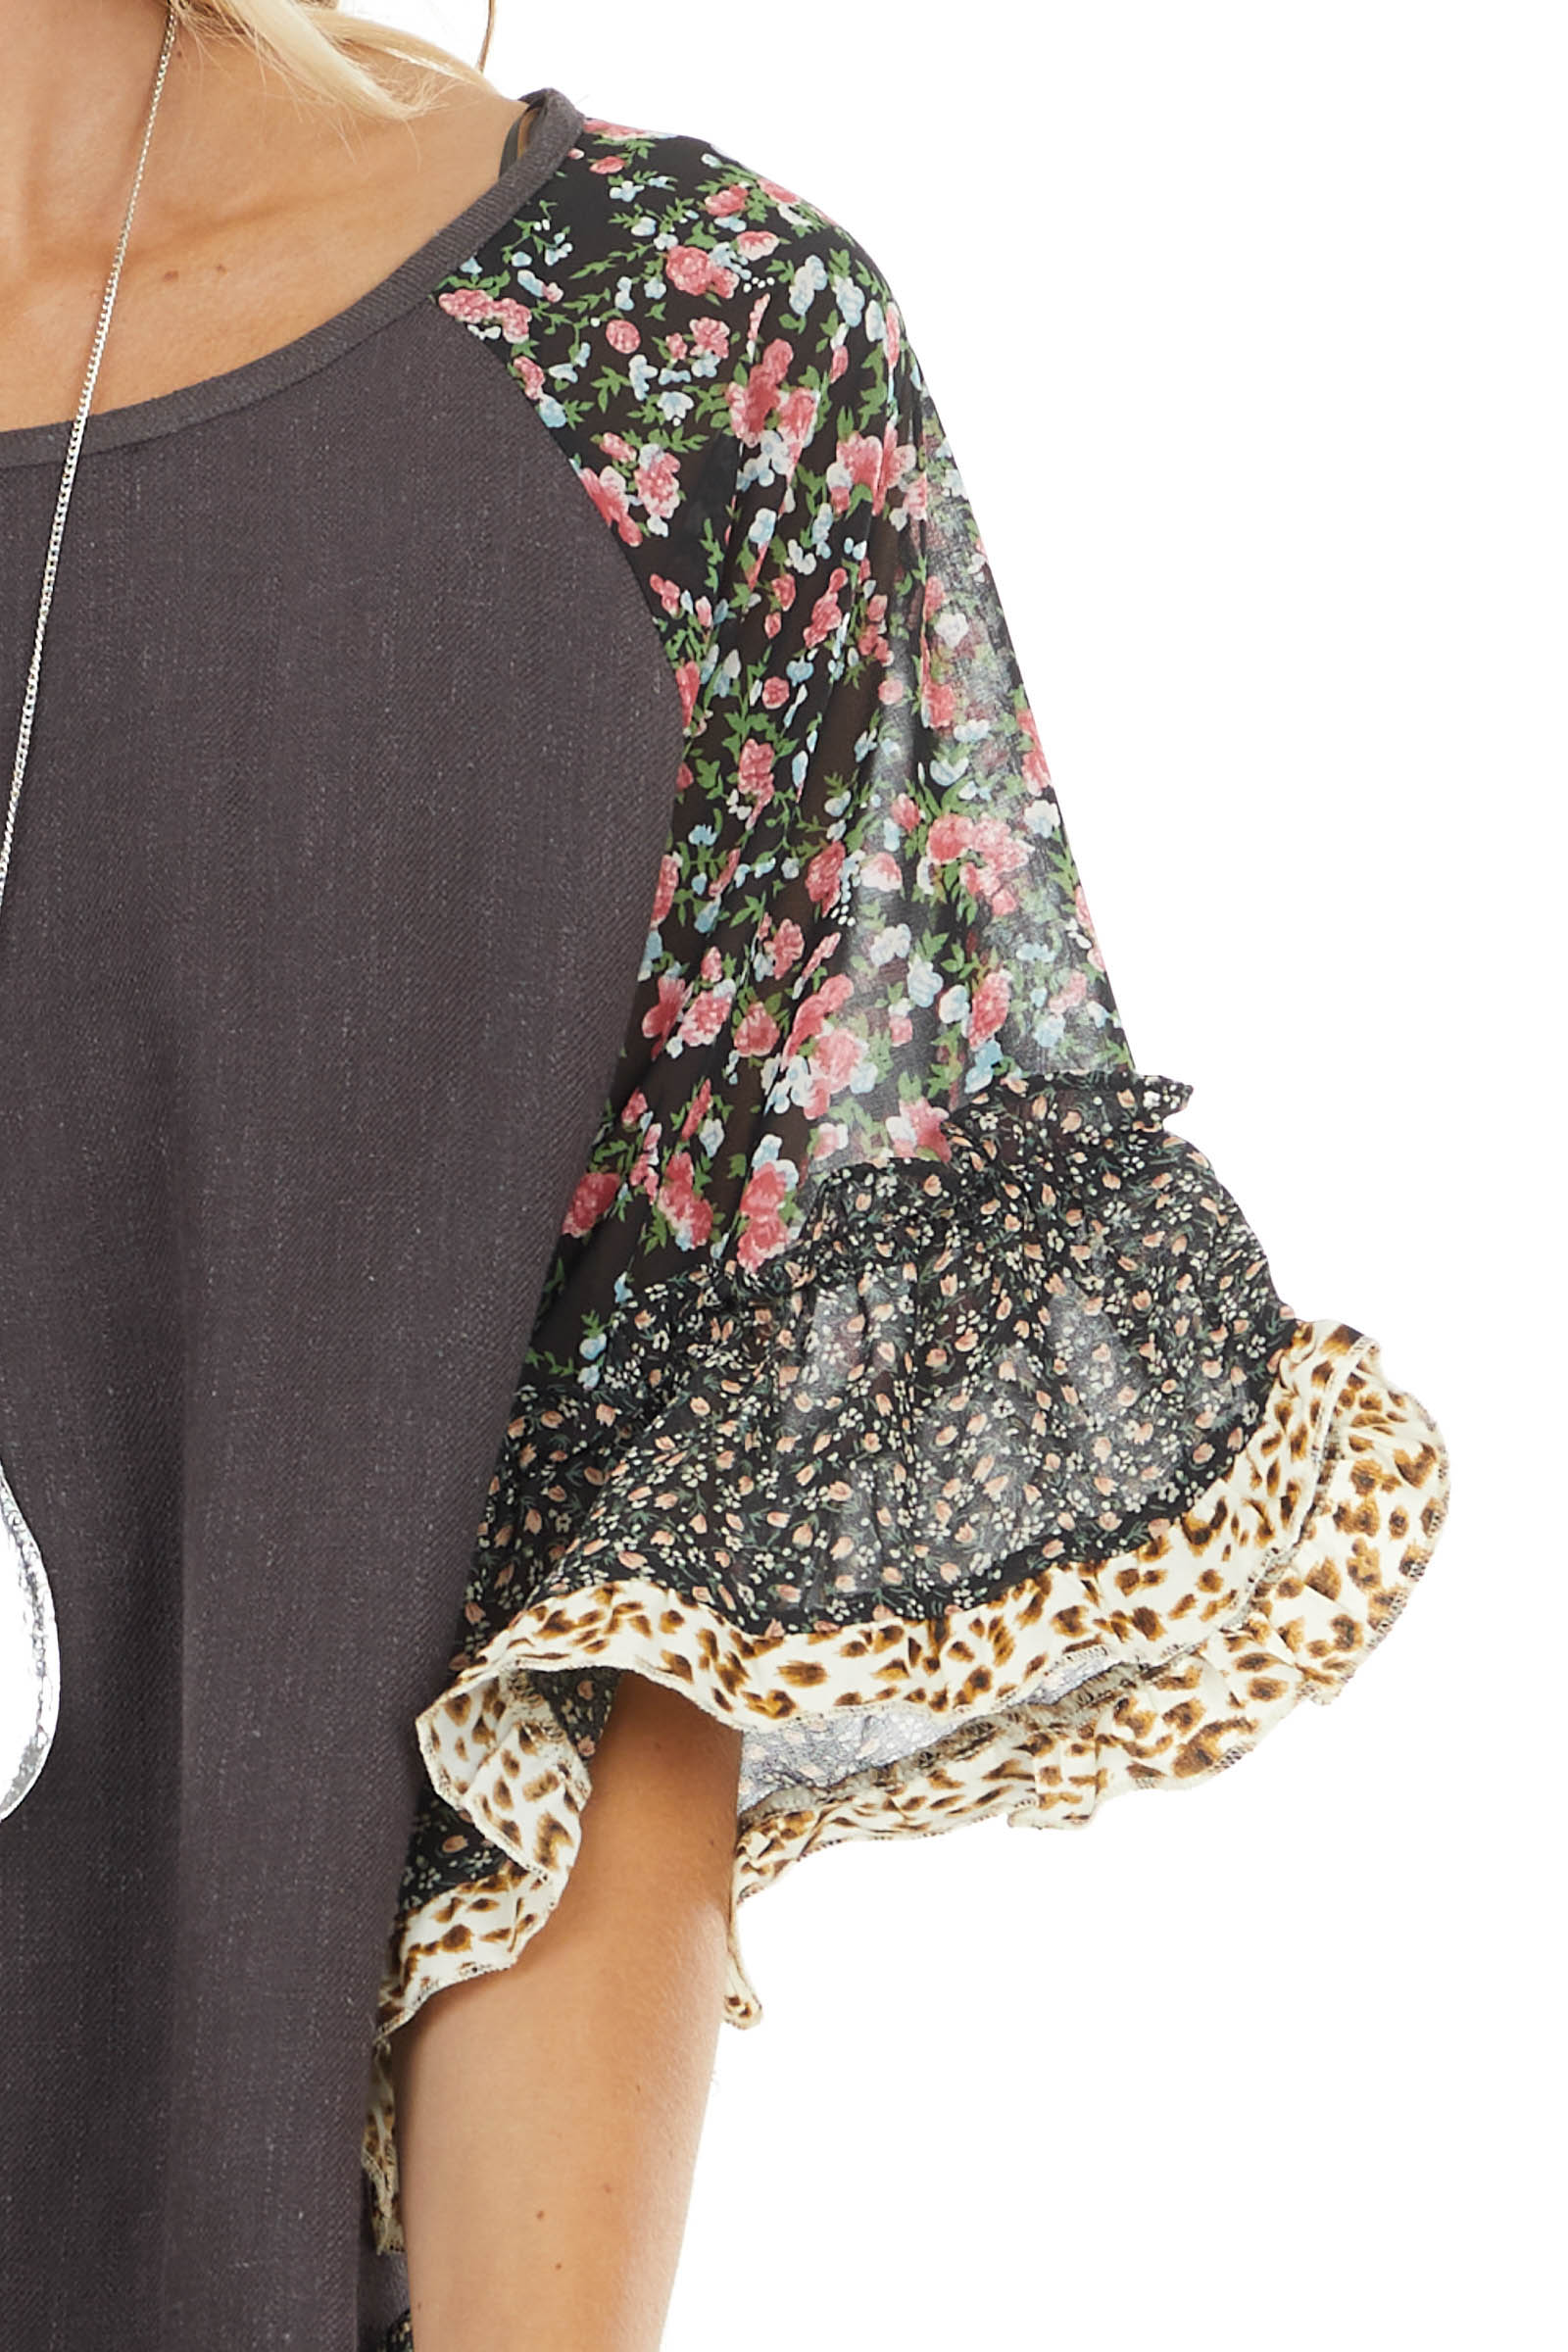 Charcoal Blouse with Multi Floral Ruffle Sleeves and Hem